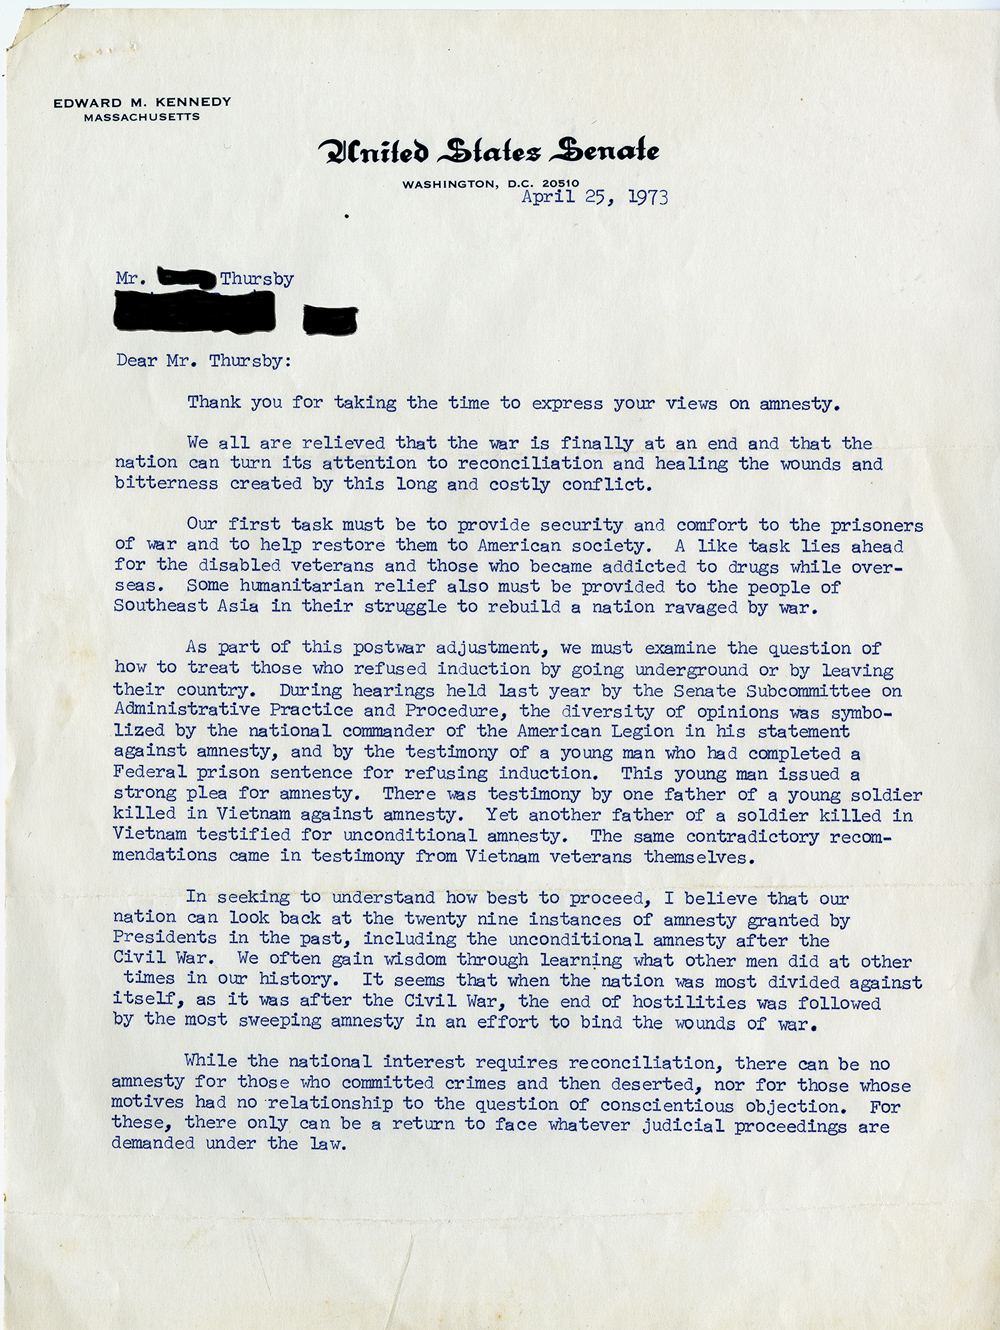 Edward Kennedy to Mr. Thursby, April 25, 1973 (GLC09526)